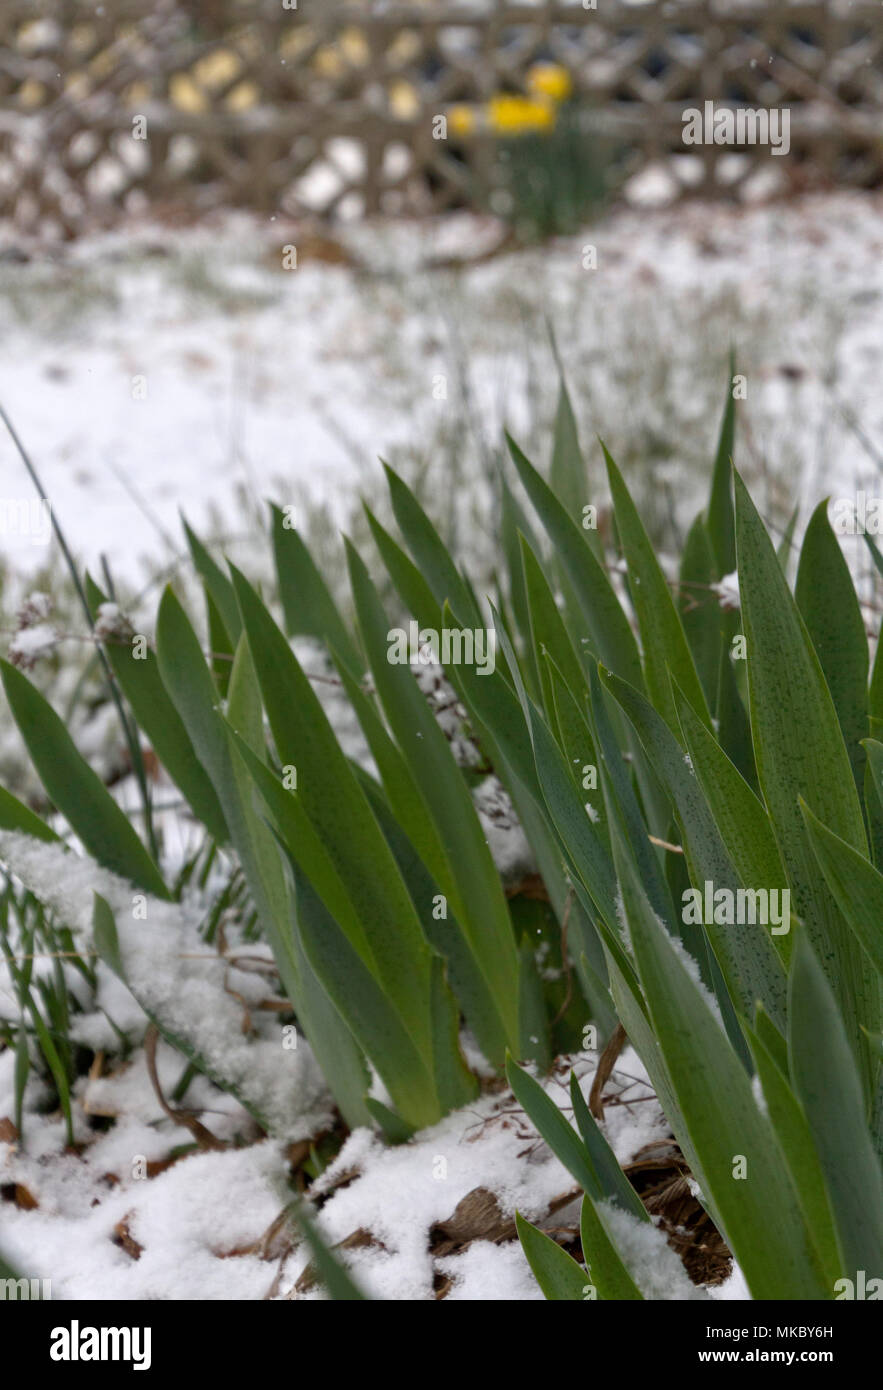 Spring Iris flower plants erupt from ground covered in a late winter snow Stock Photo